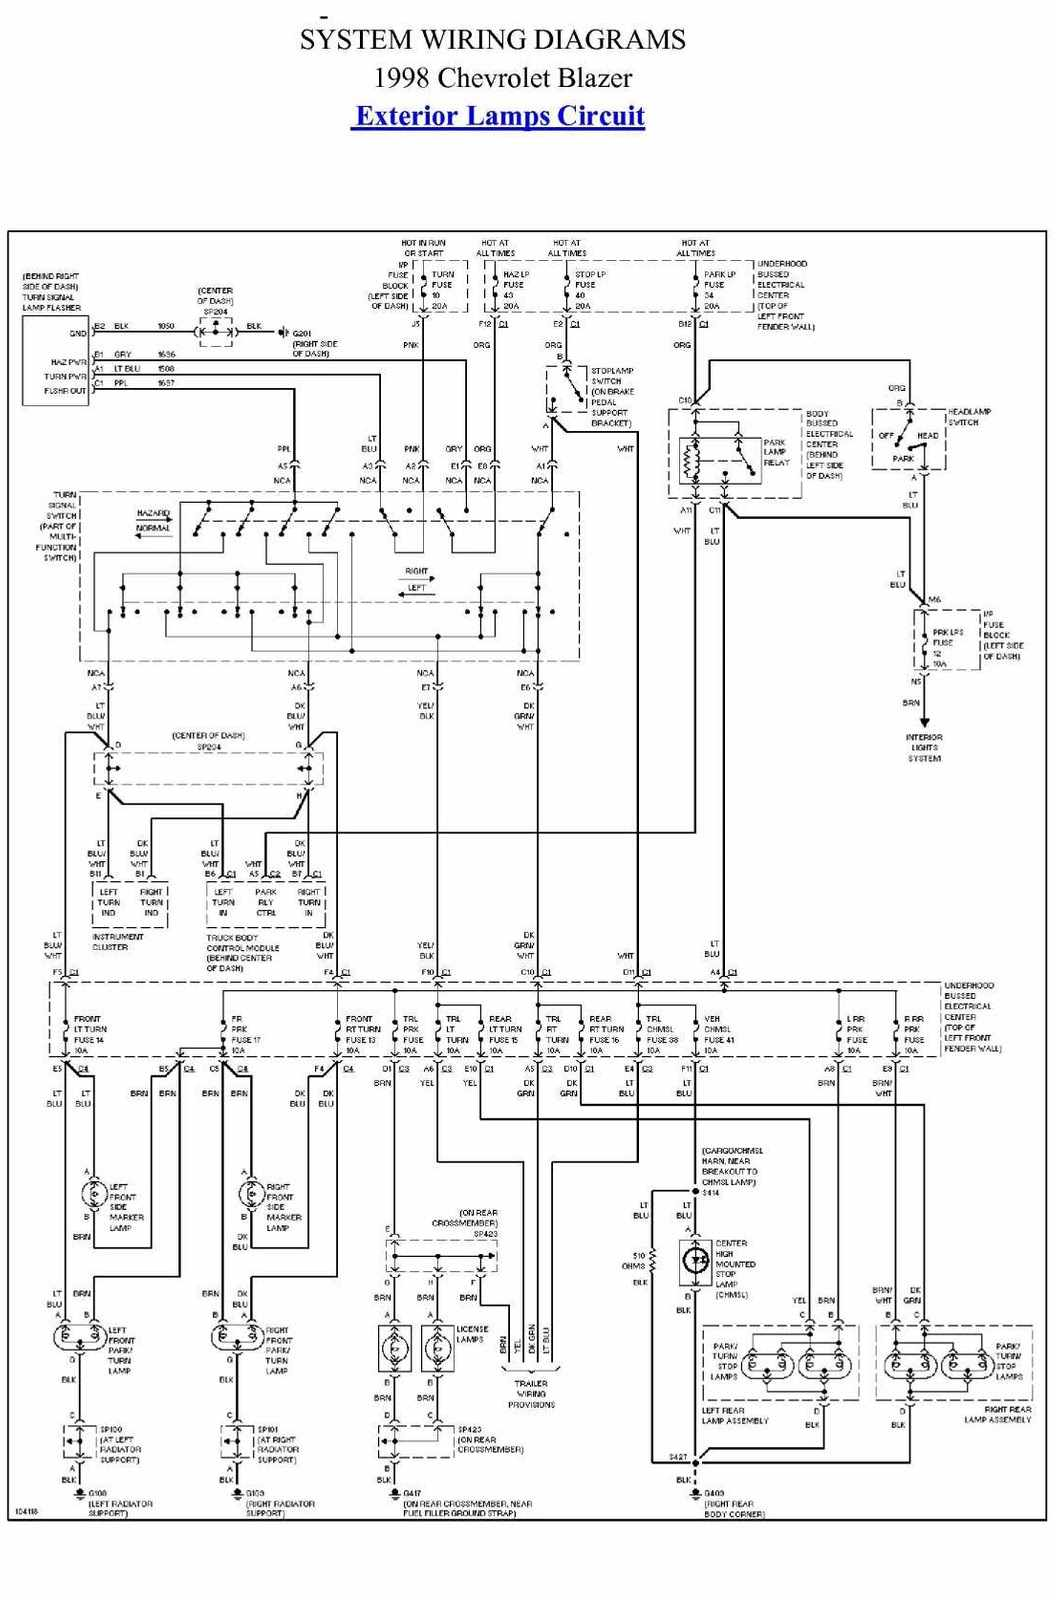 [SCHEMATICS_48DE]  7ACAF 1999 Blazer Distributor Wiring Diagram | Wiring Library | In A 1999 Blazer Engine Wiring Diagram |  | Wiring Library